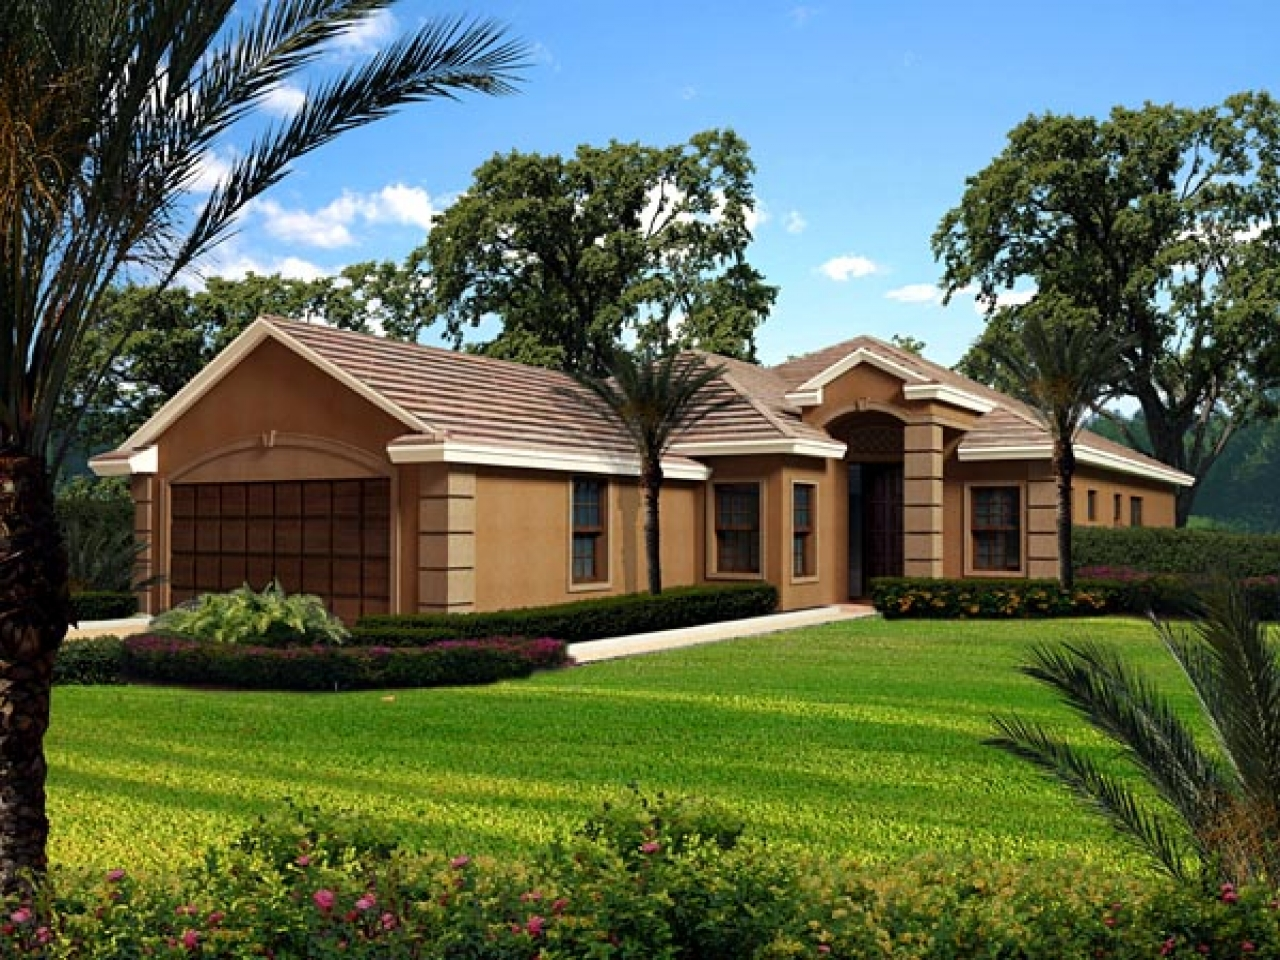 Old florida style house plans old florida house designs Floridian house plans